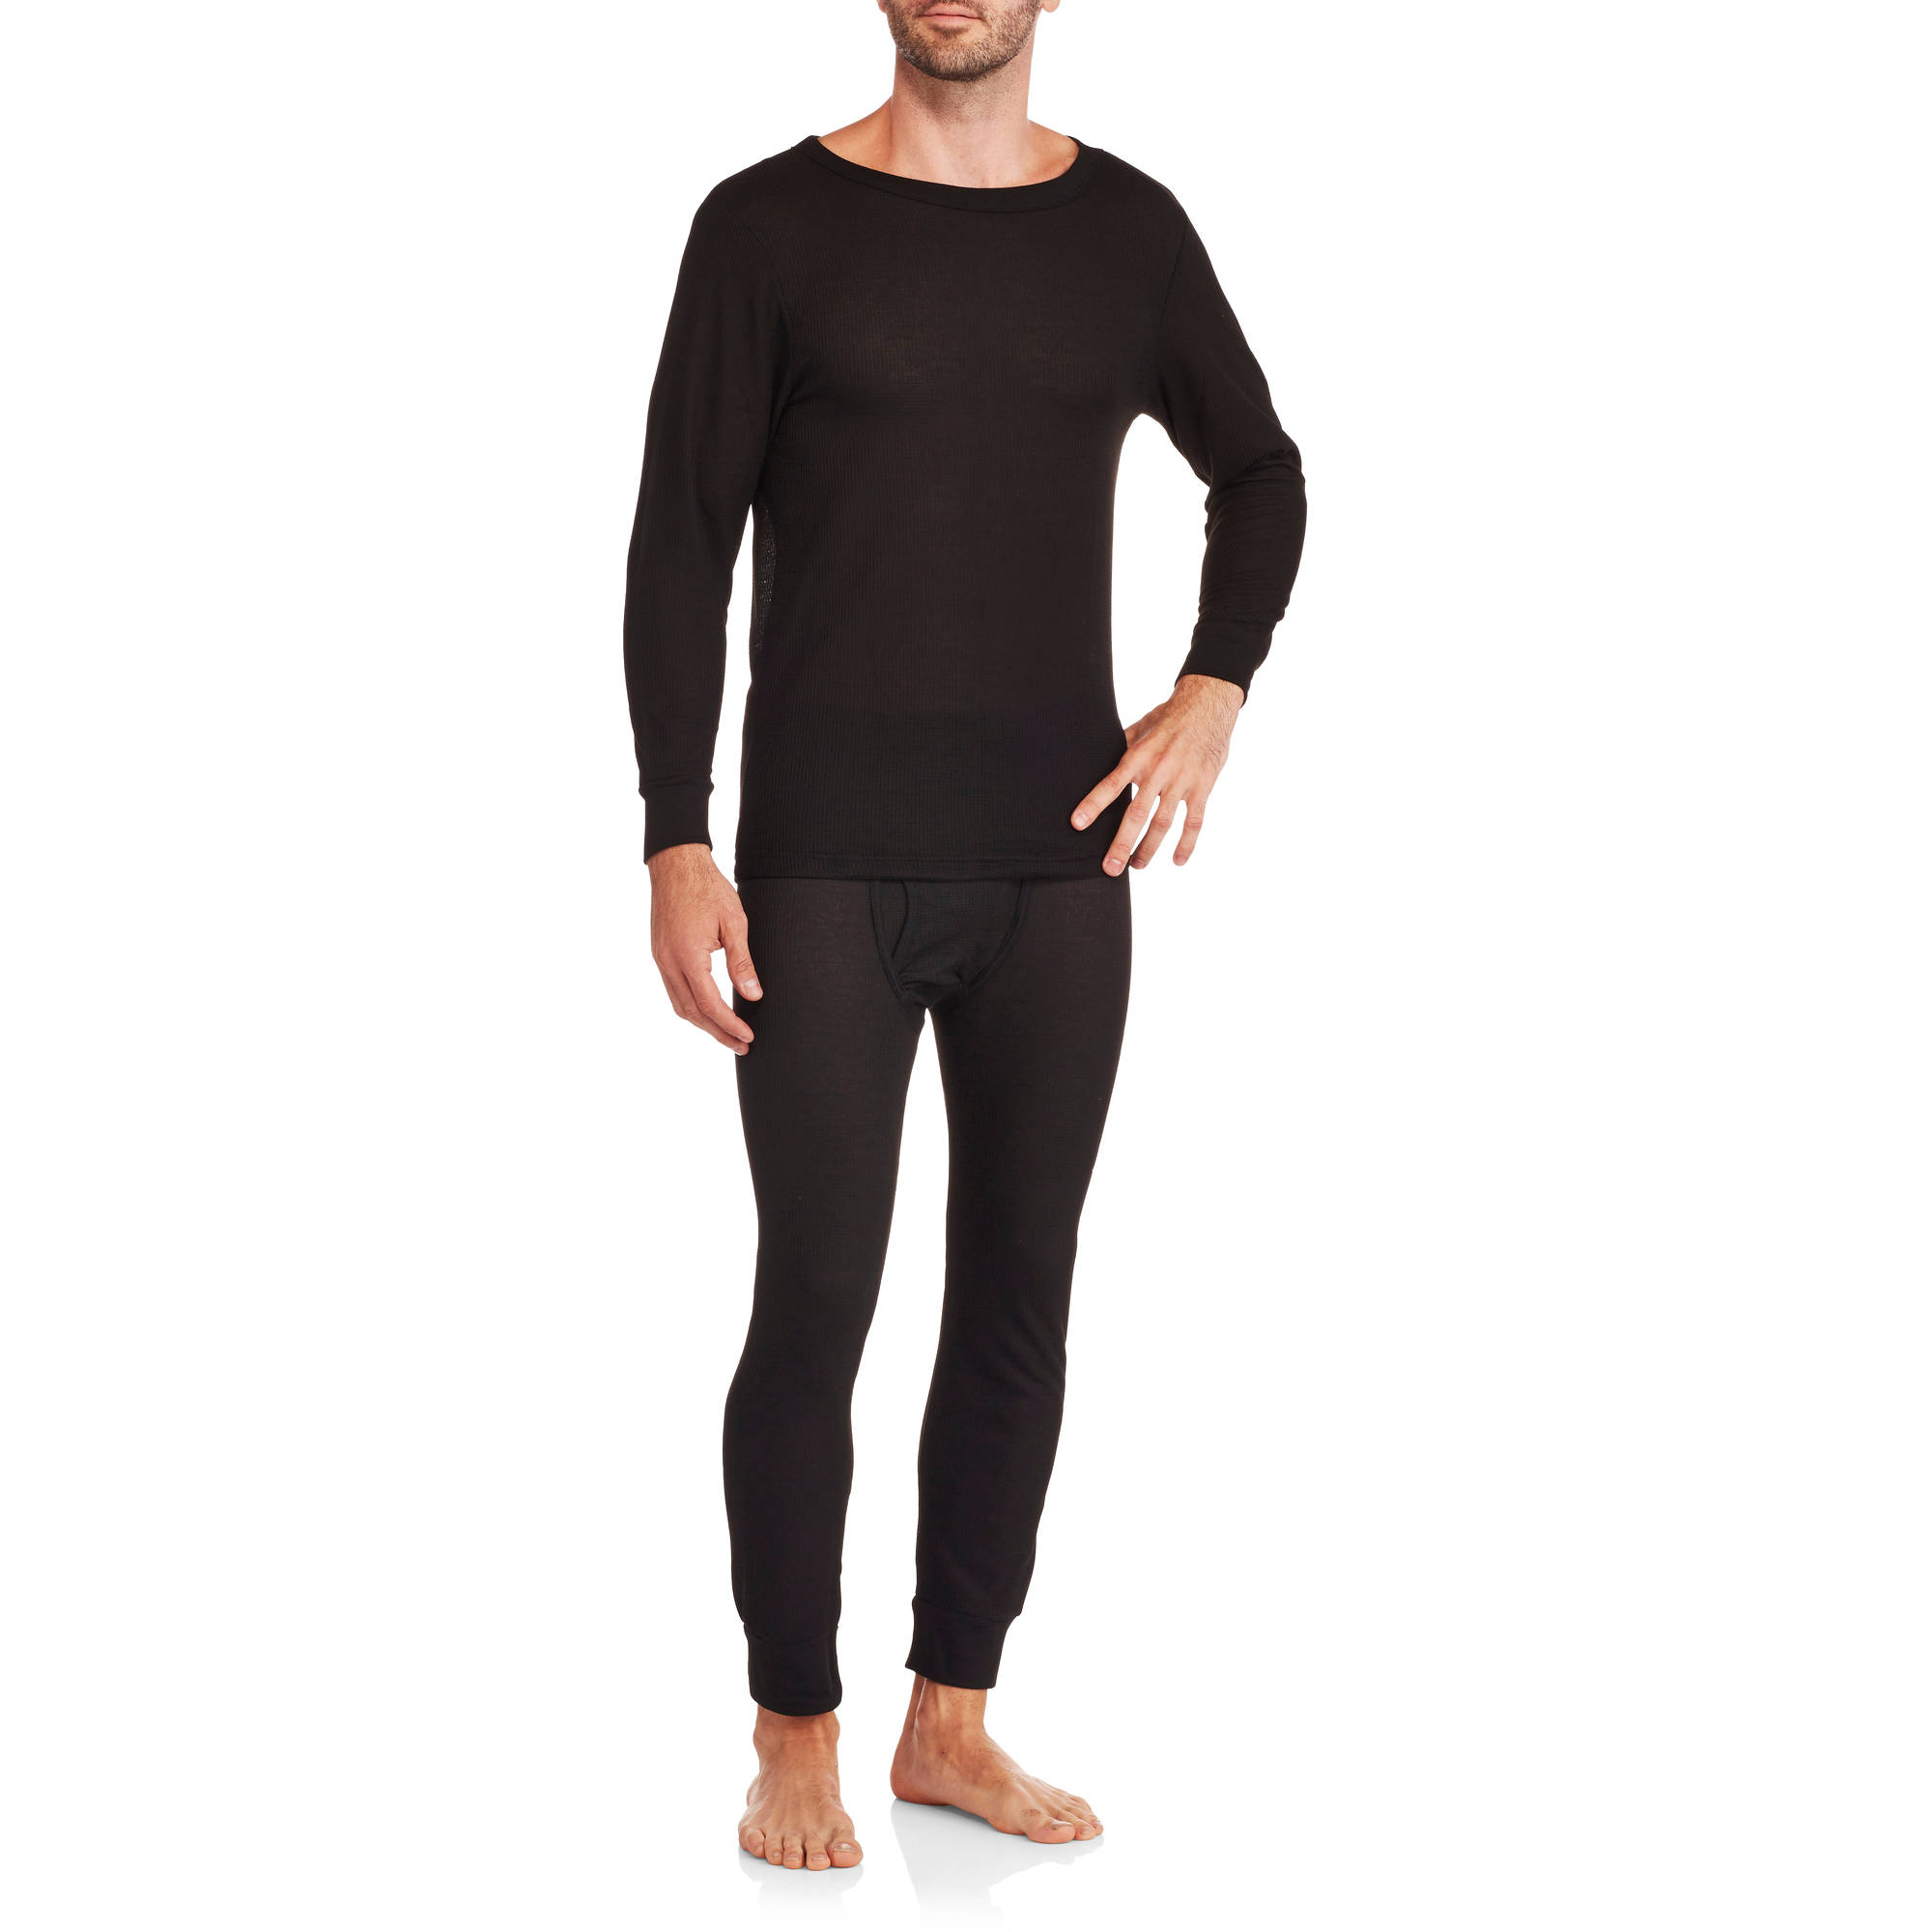 Men's Performance Wicking Thermal Top and Bottom Set